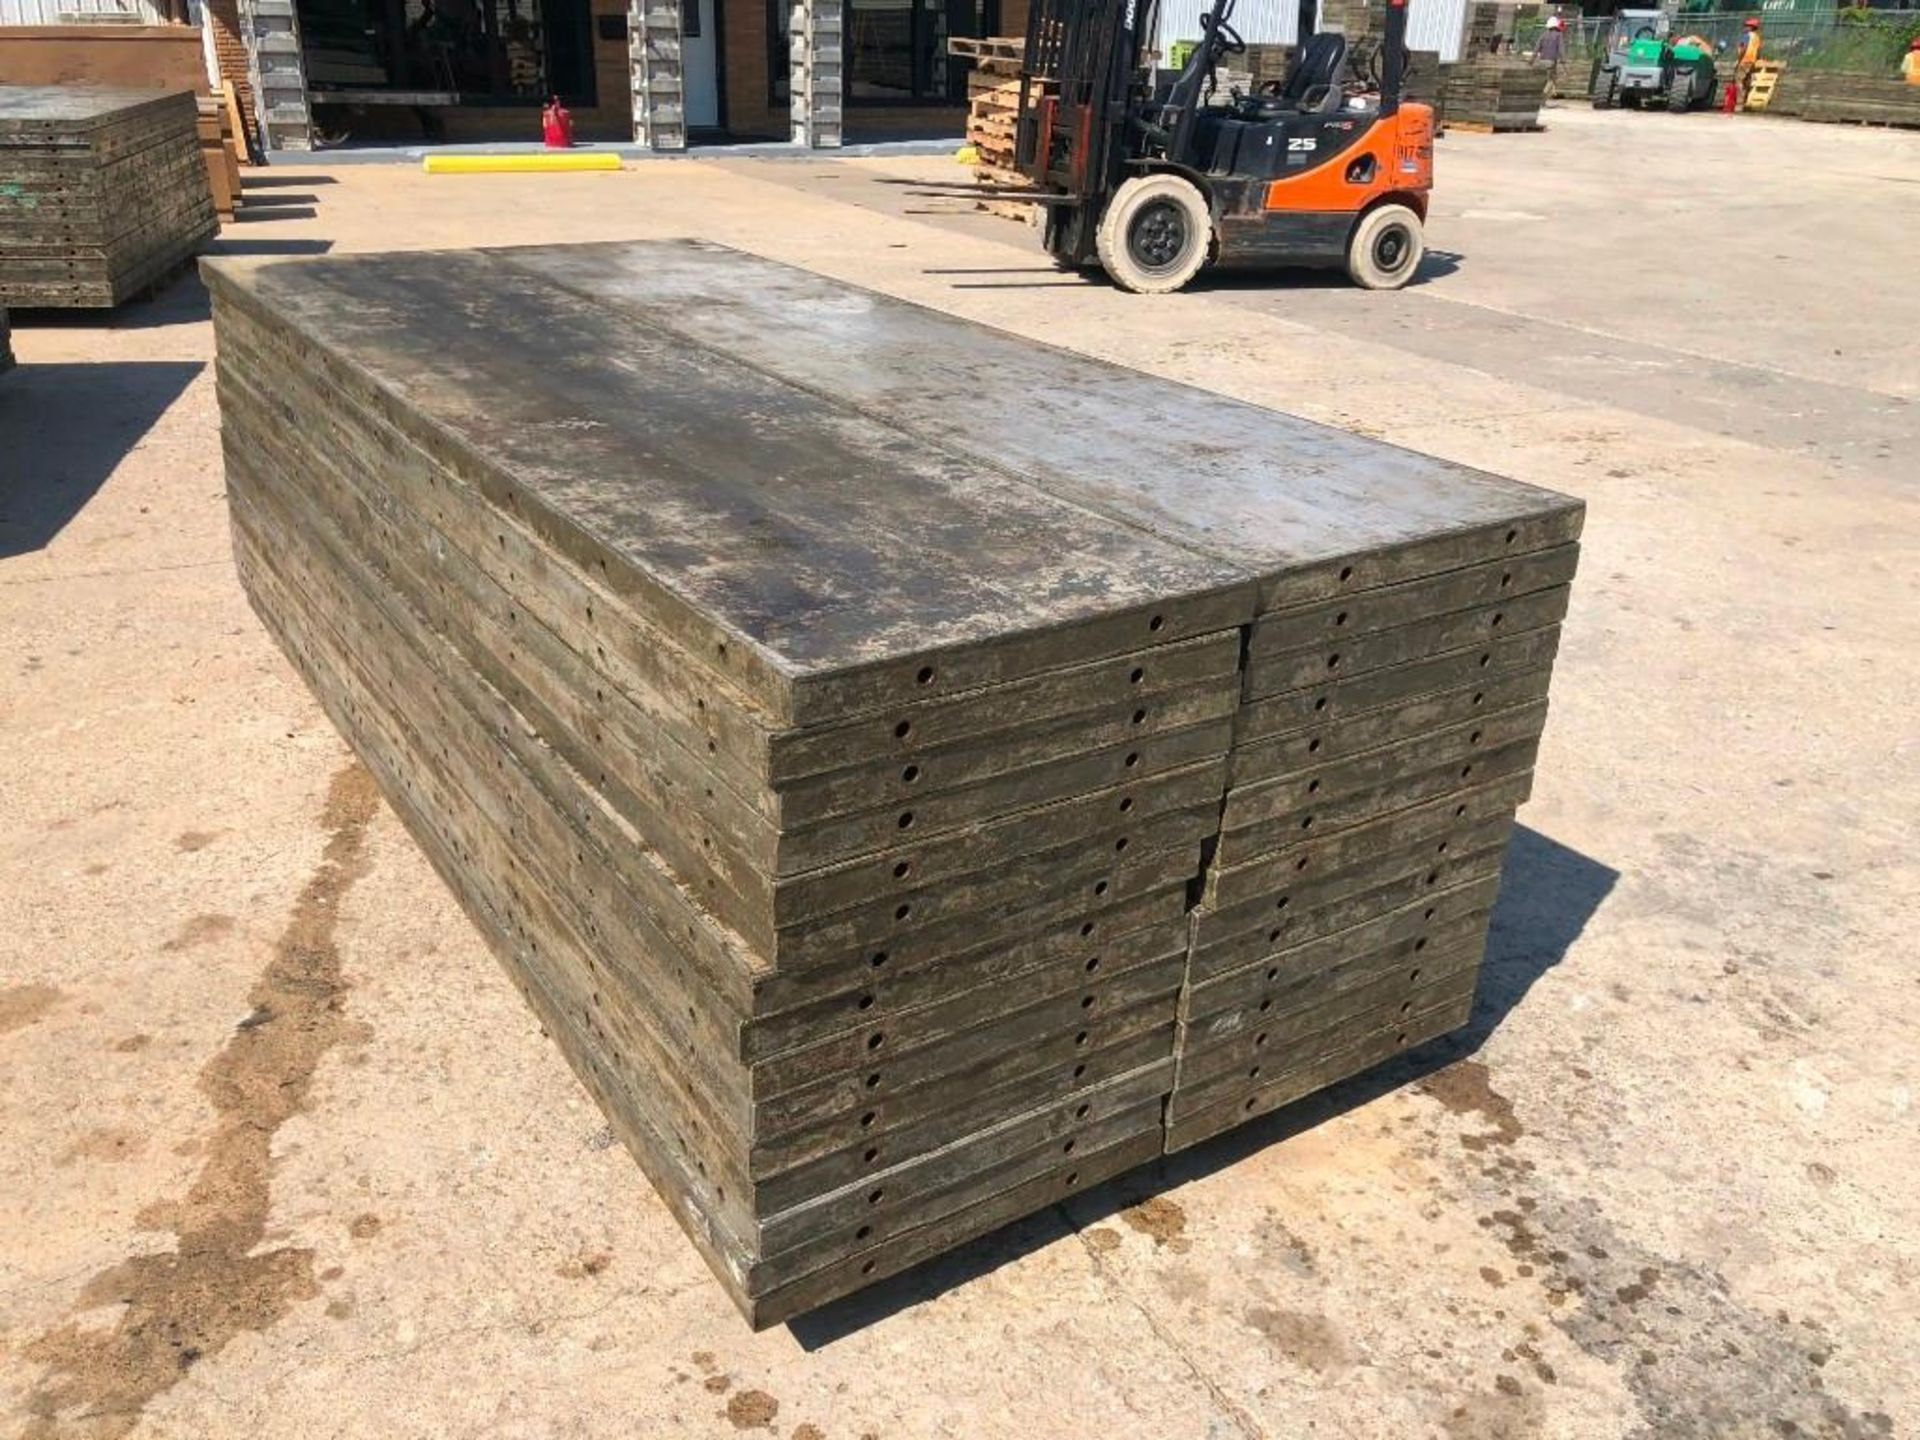 Lot 143 - (30) 2' x 9' Wall-Ties Aluminum Concrete Forms, Laydowns, Smooth 6-12 Hole Pattern. Located at 301 E